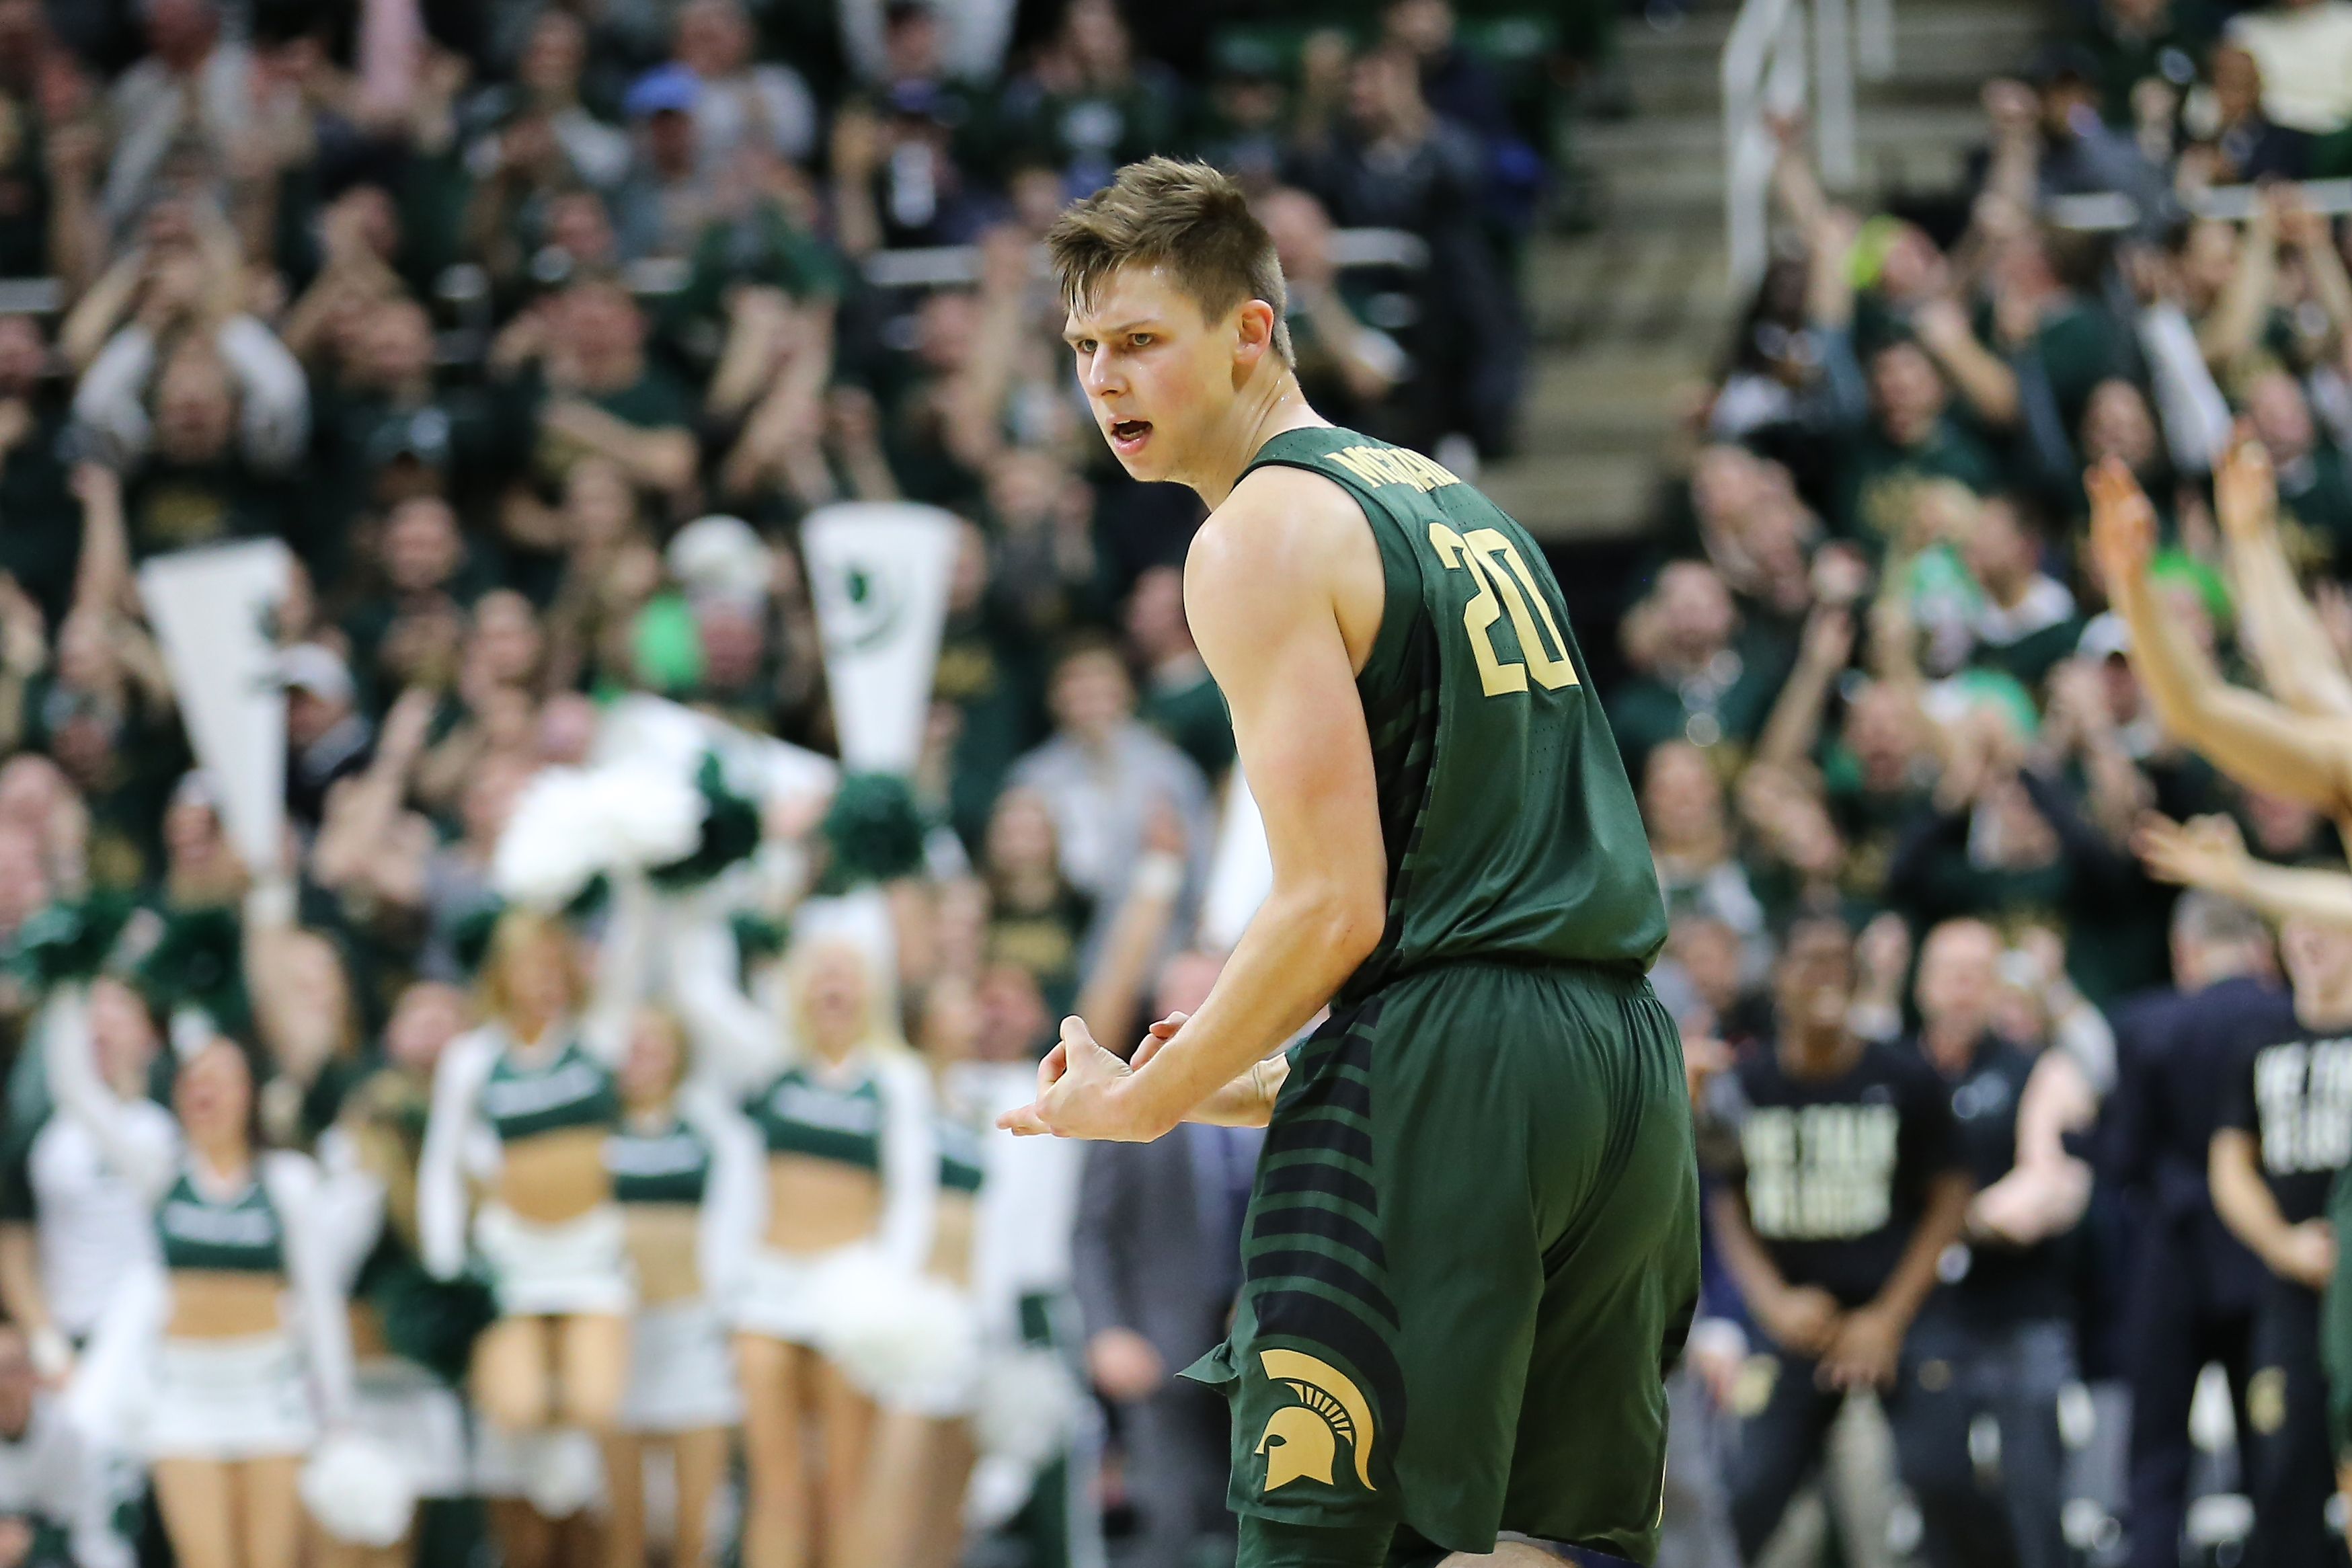 Michigan State Basketball: 5 bold predictions vs. Ohio State in Week 9 - Page 2